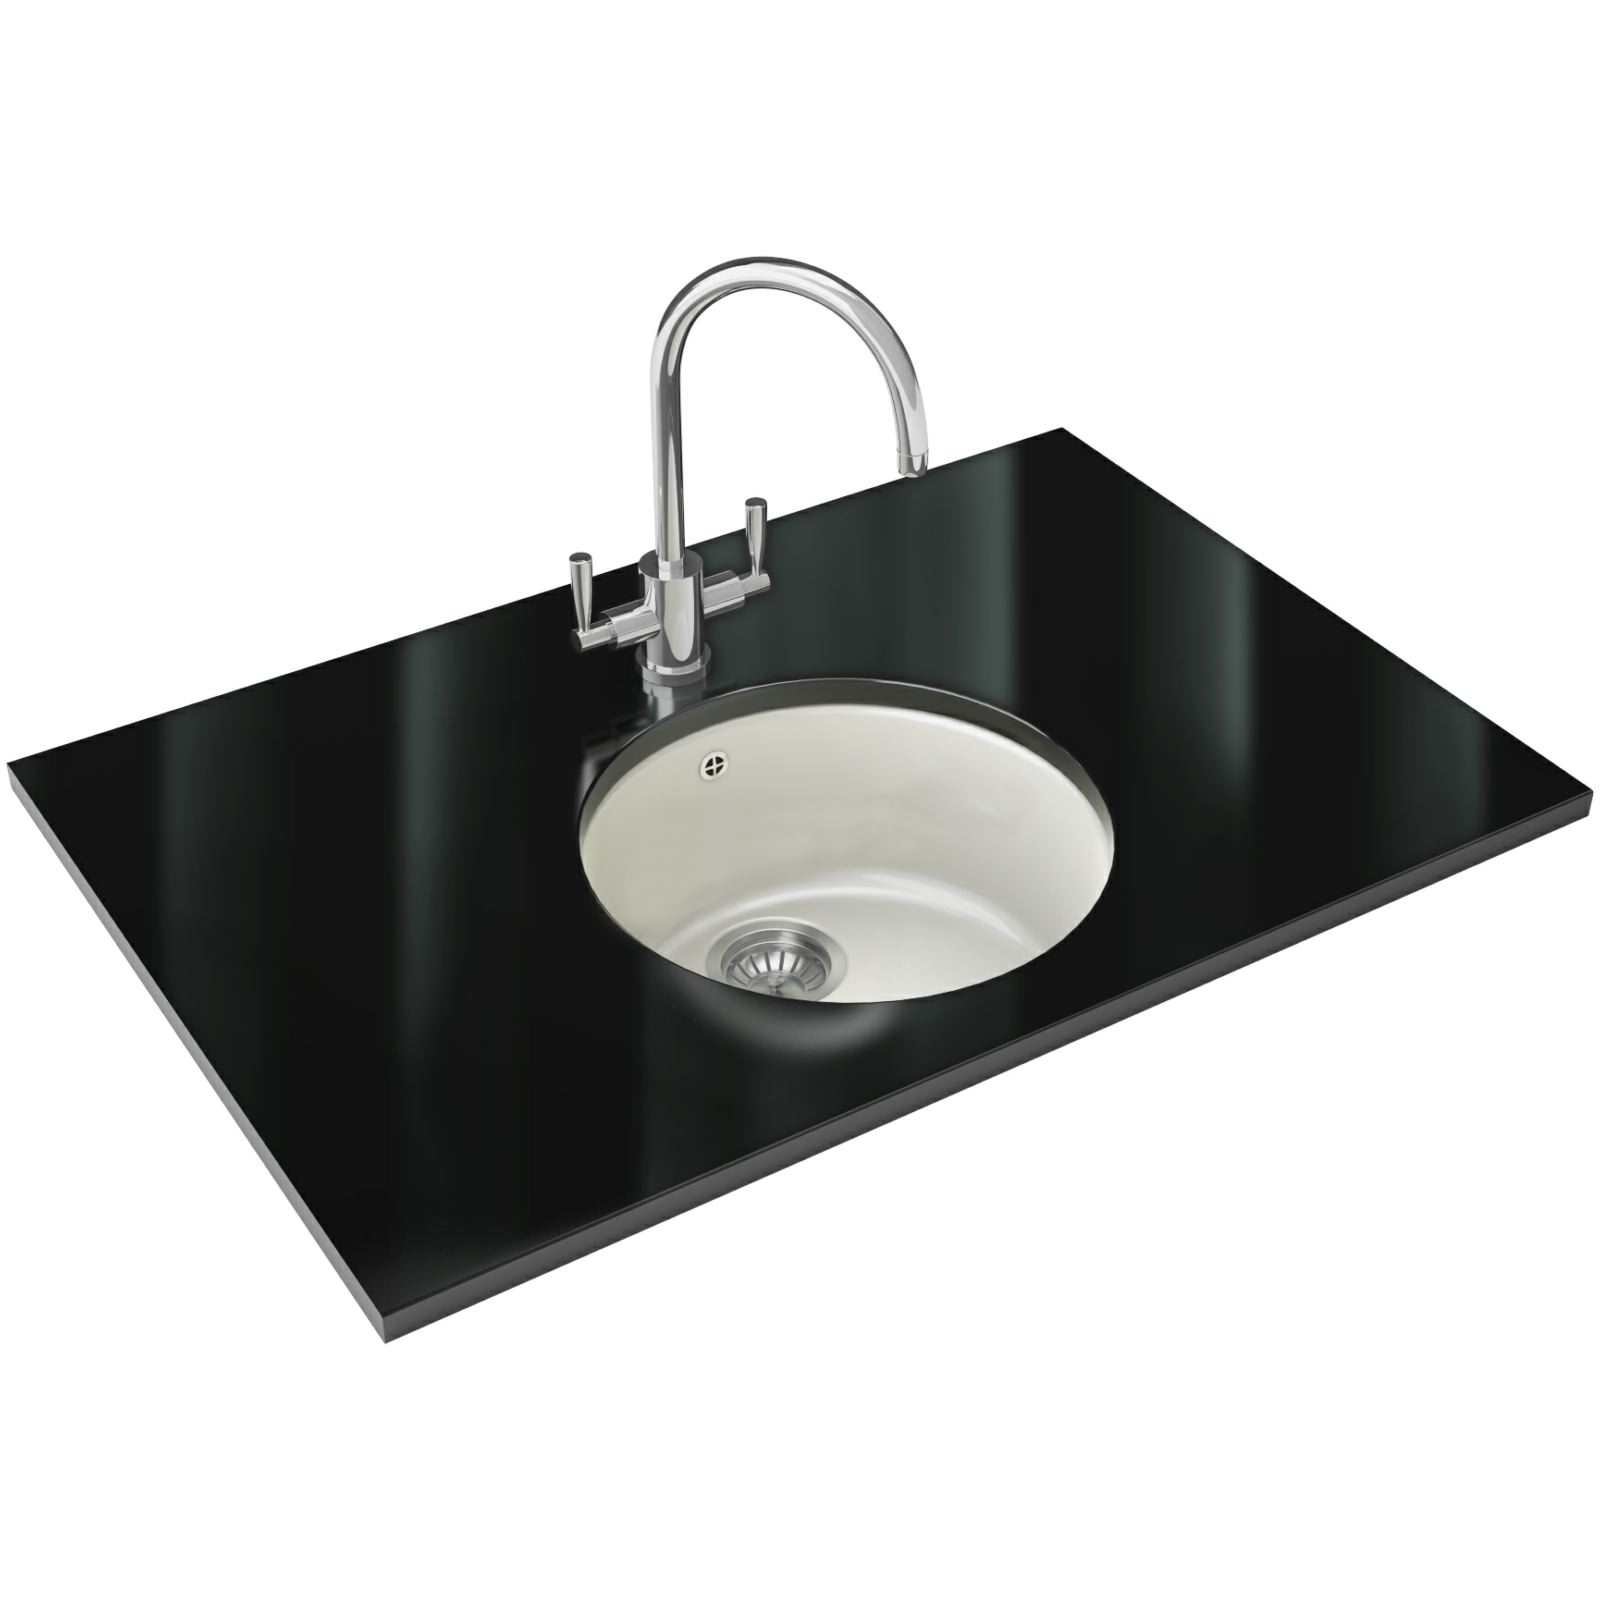 Franke Rotondo Designer Pack RUK 110 Ceramic Kitchen Sink And Tap ...